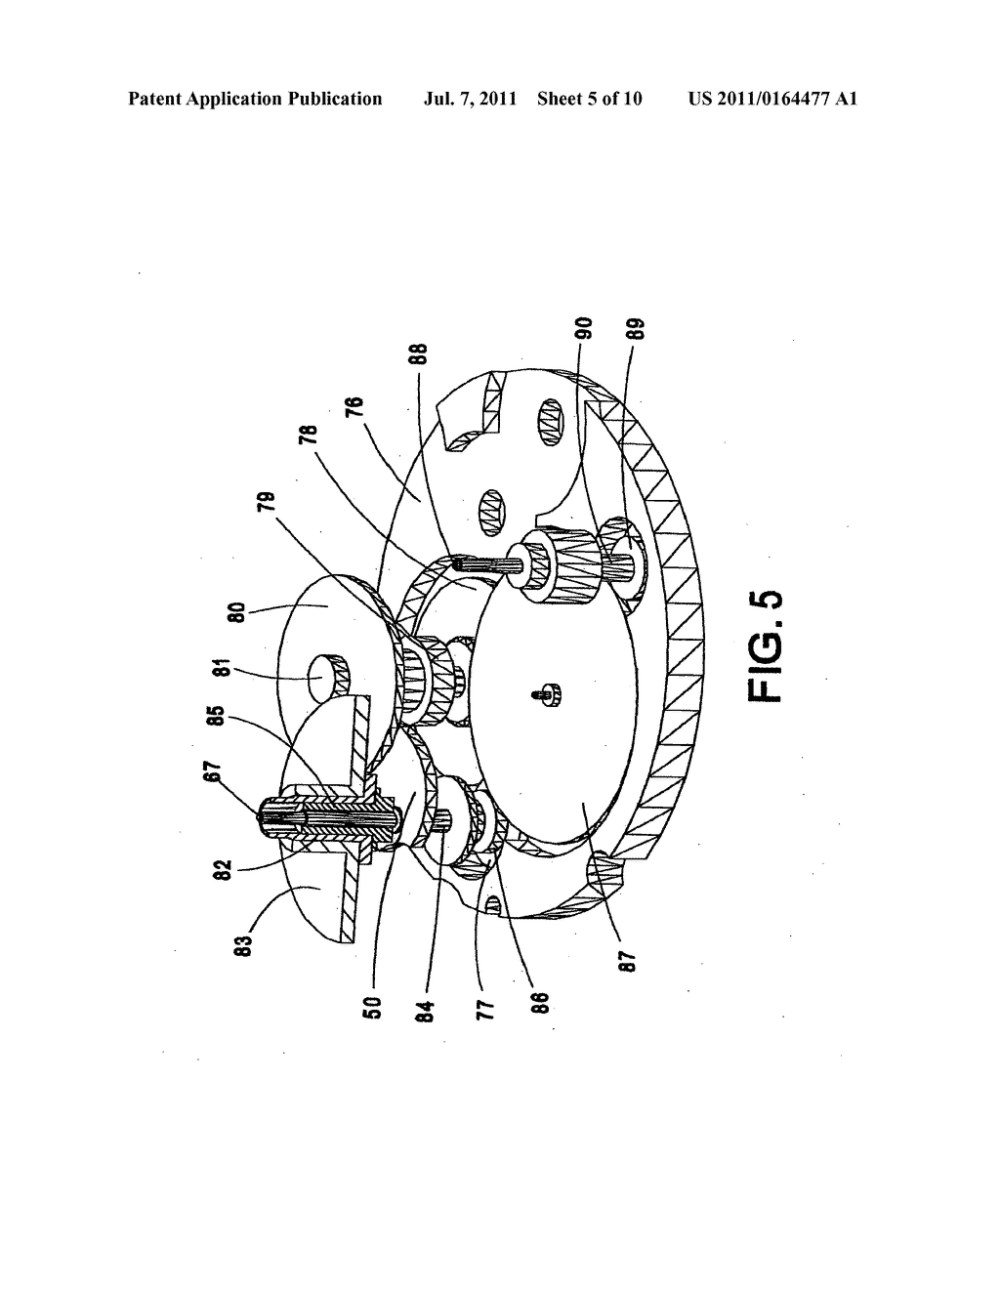 medium resolution of device comprising a clock movement and a chronograph module diagram schematic and image 06